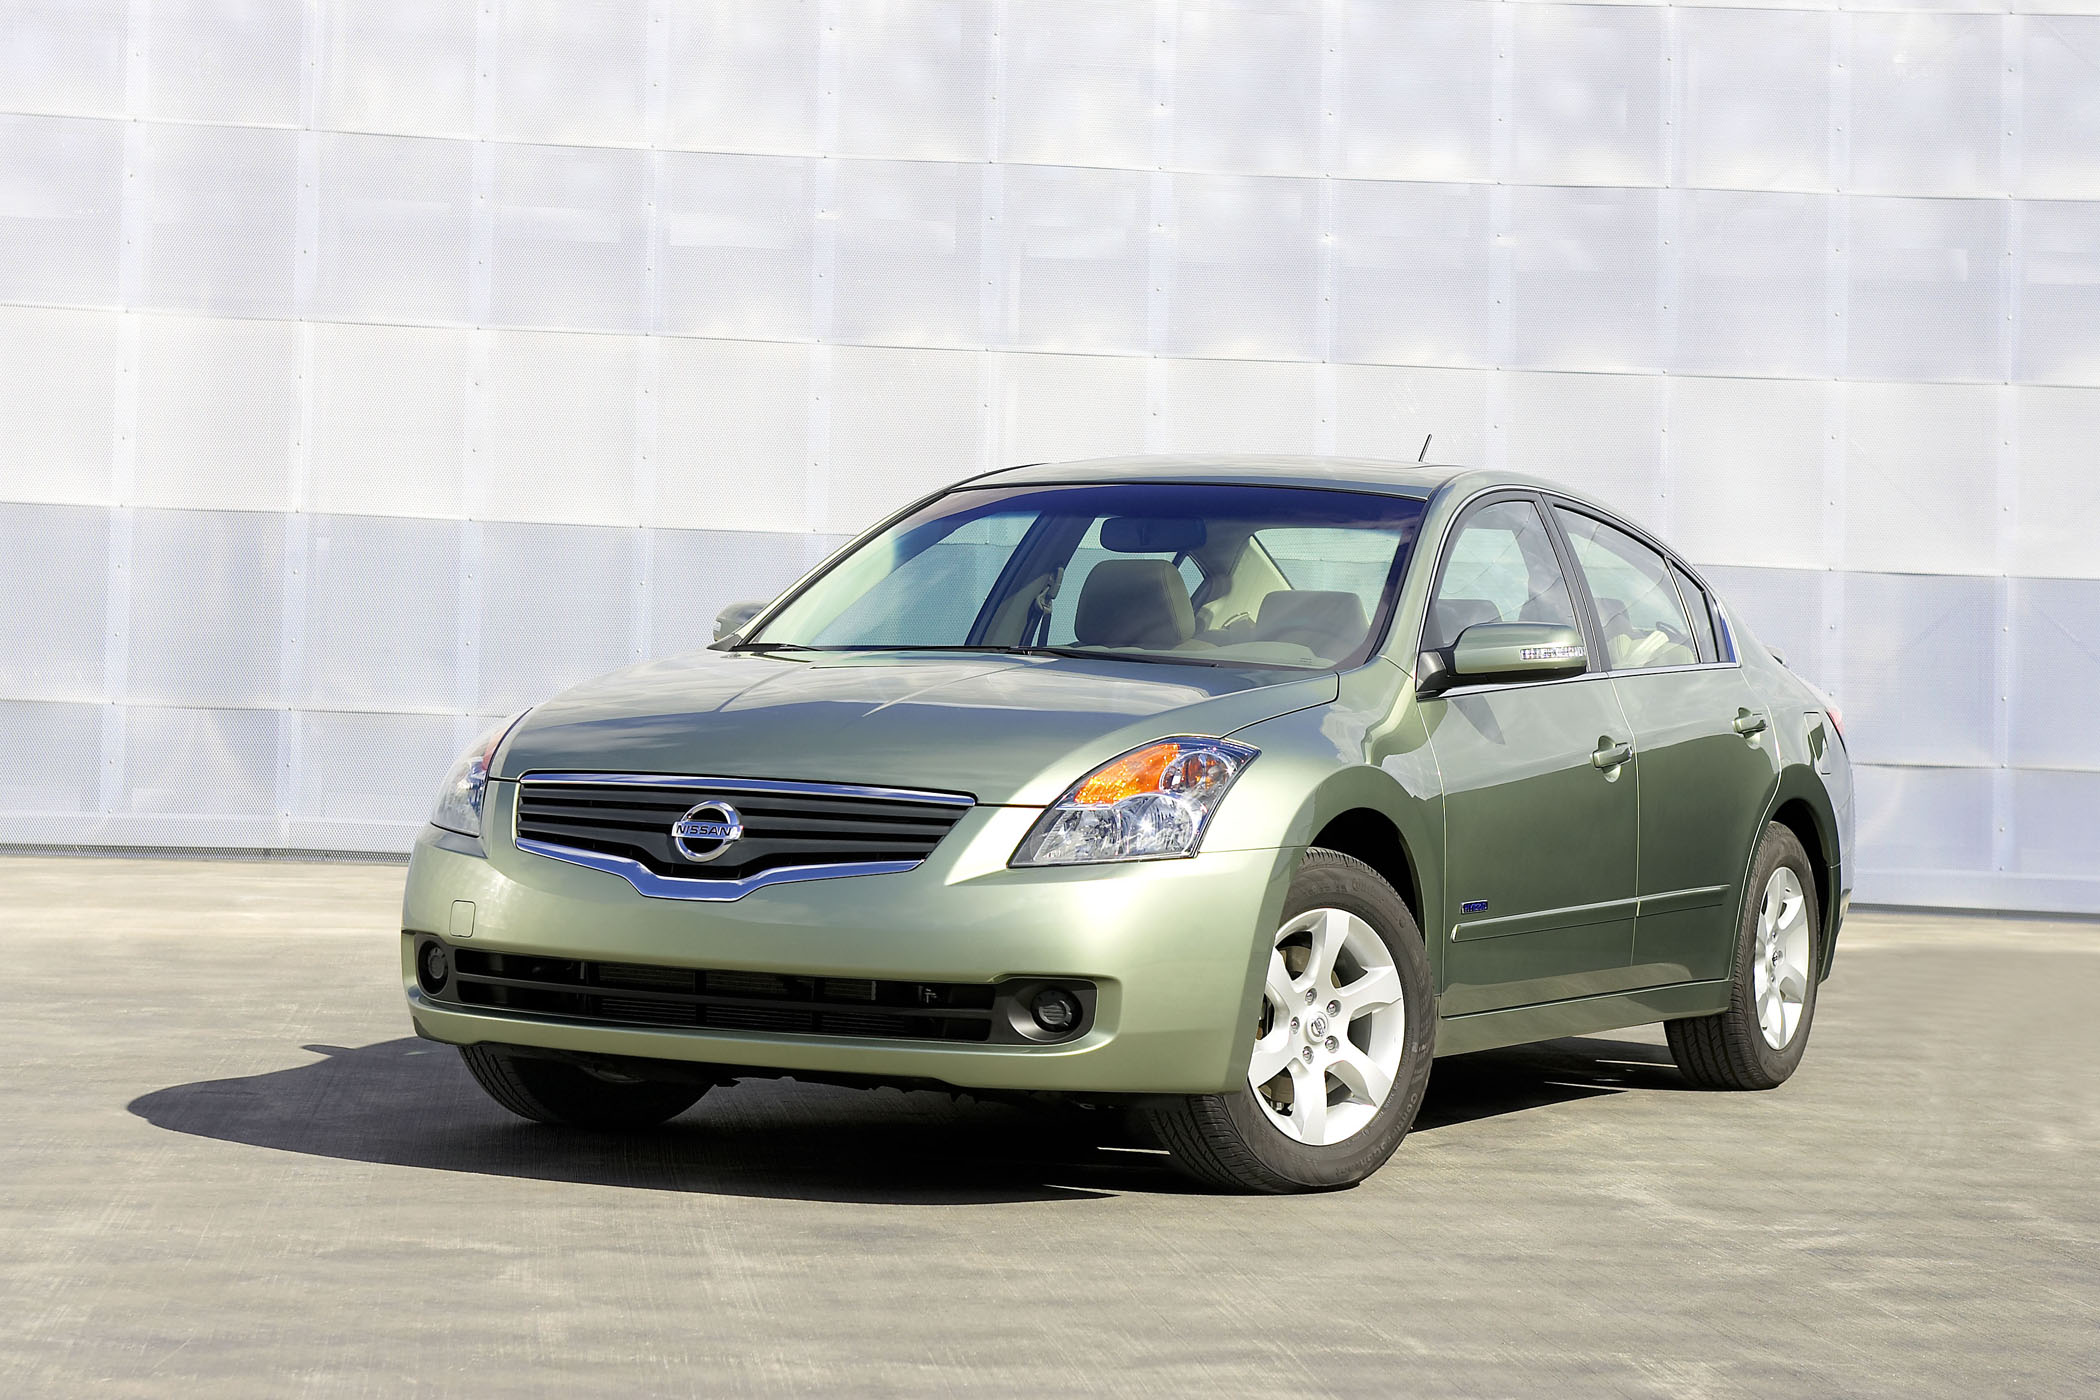 The Altima Hybrid Is Rated To Achieve 35 Miles Per Gallon In City And 33 Mpg Highway It Has A Projected Driving Range Of 700 On Single